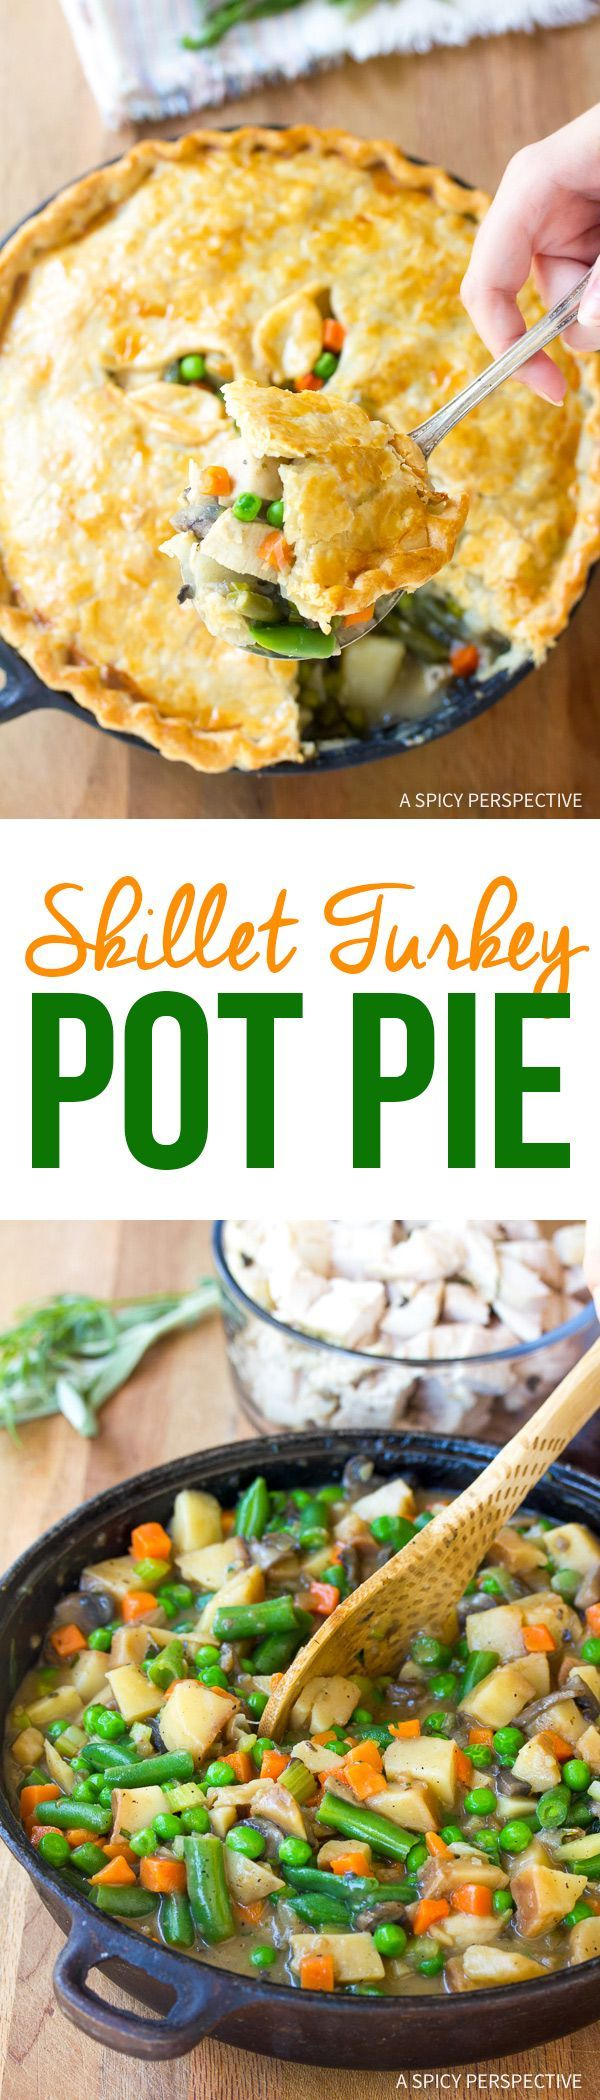 Skillet Turkey Pot Pie Recipe - Use up your Thanksgiving leftovers in this amazing pot pie recipe! Or substitute chicken for the turkey to make a classic chicken pot pie! via @spicyperspectiv